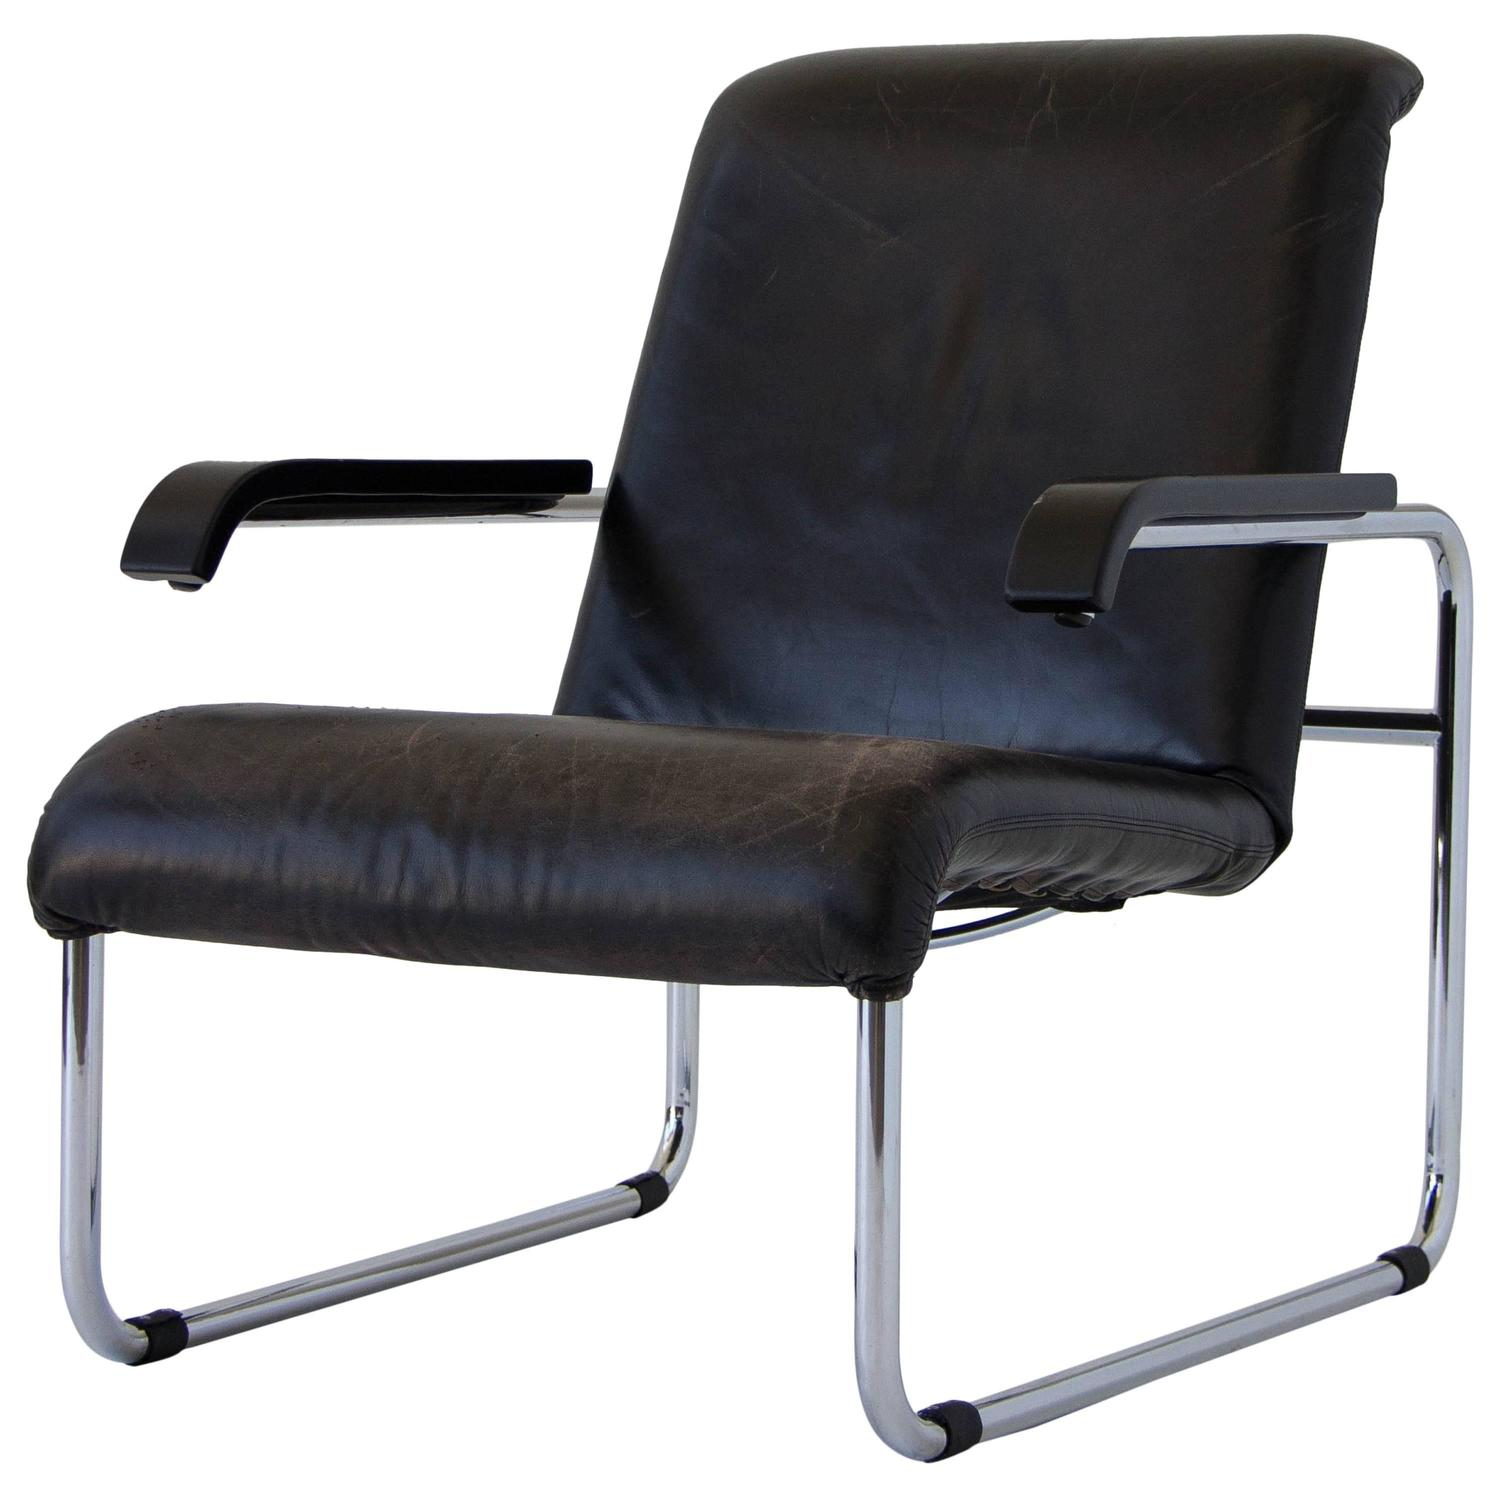 marcel breuer for thonet b35 leather lounge chair at 1stdibs. Black Bedroom Furniture Sets. Home Design Ideas